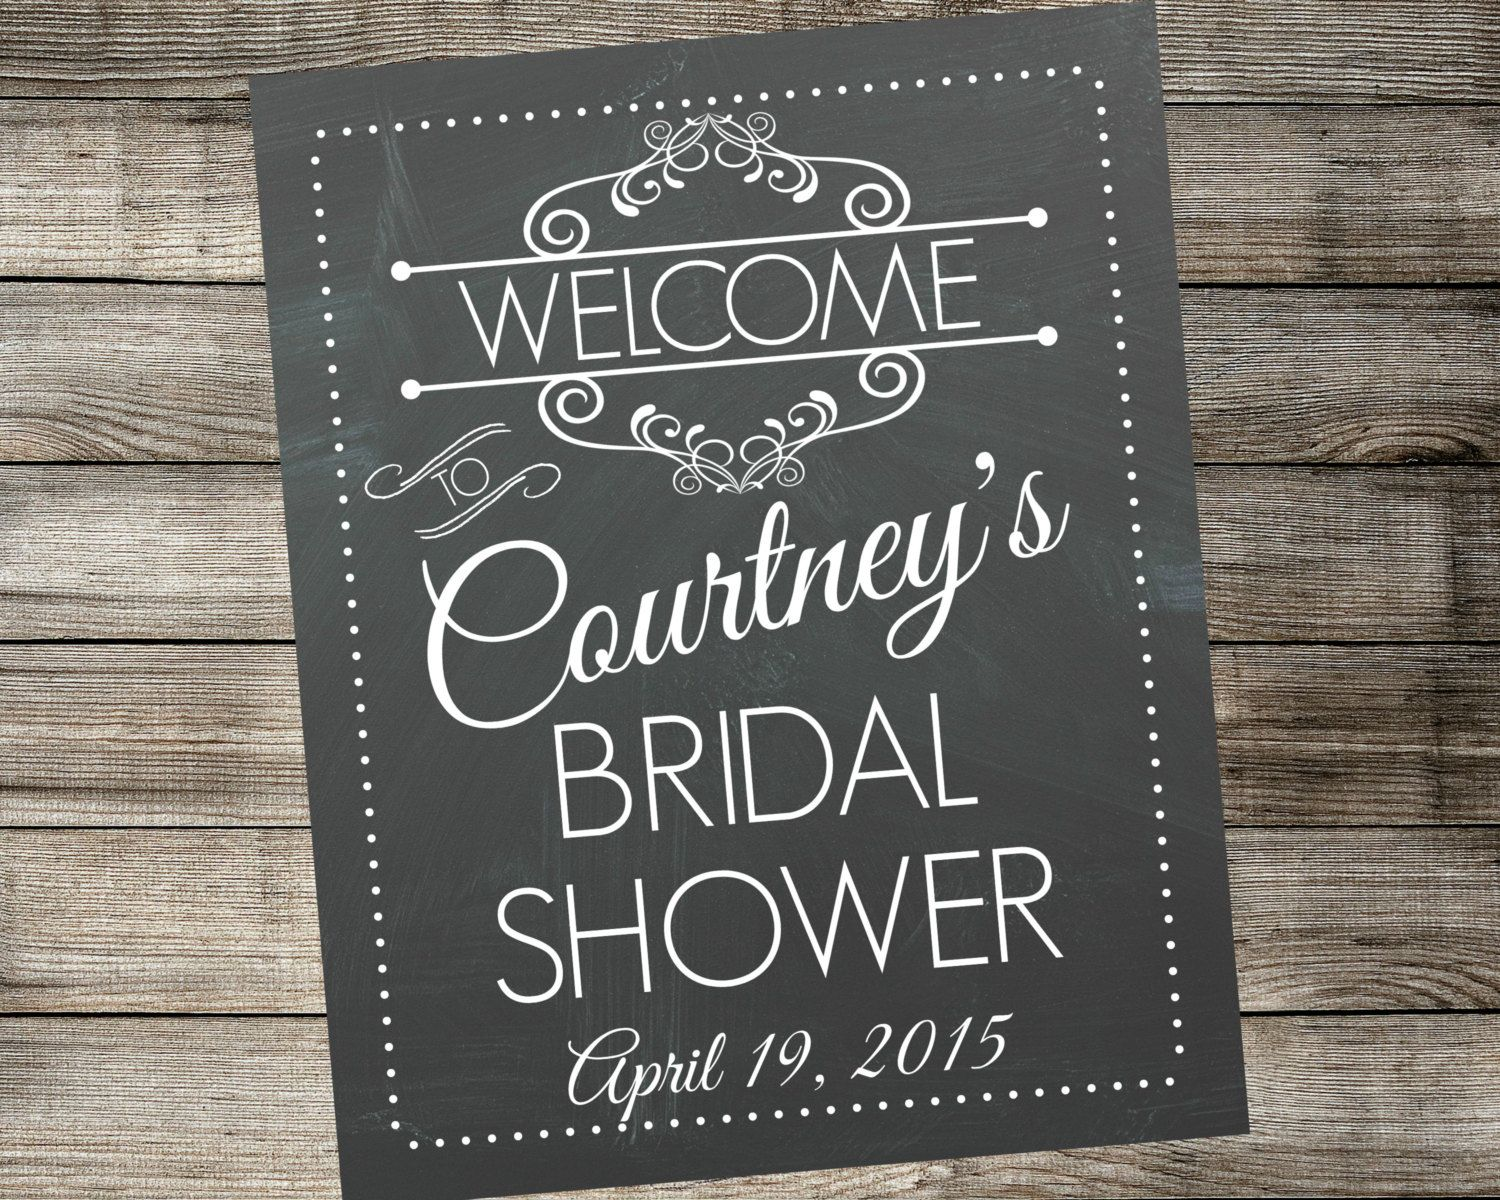 guess who bridal shower game printable%0A Personalized Bridal Shower Welcome Sign  Printable Vintage Chalkboard